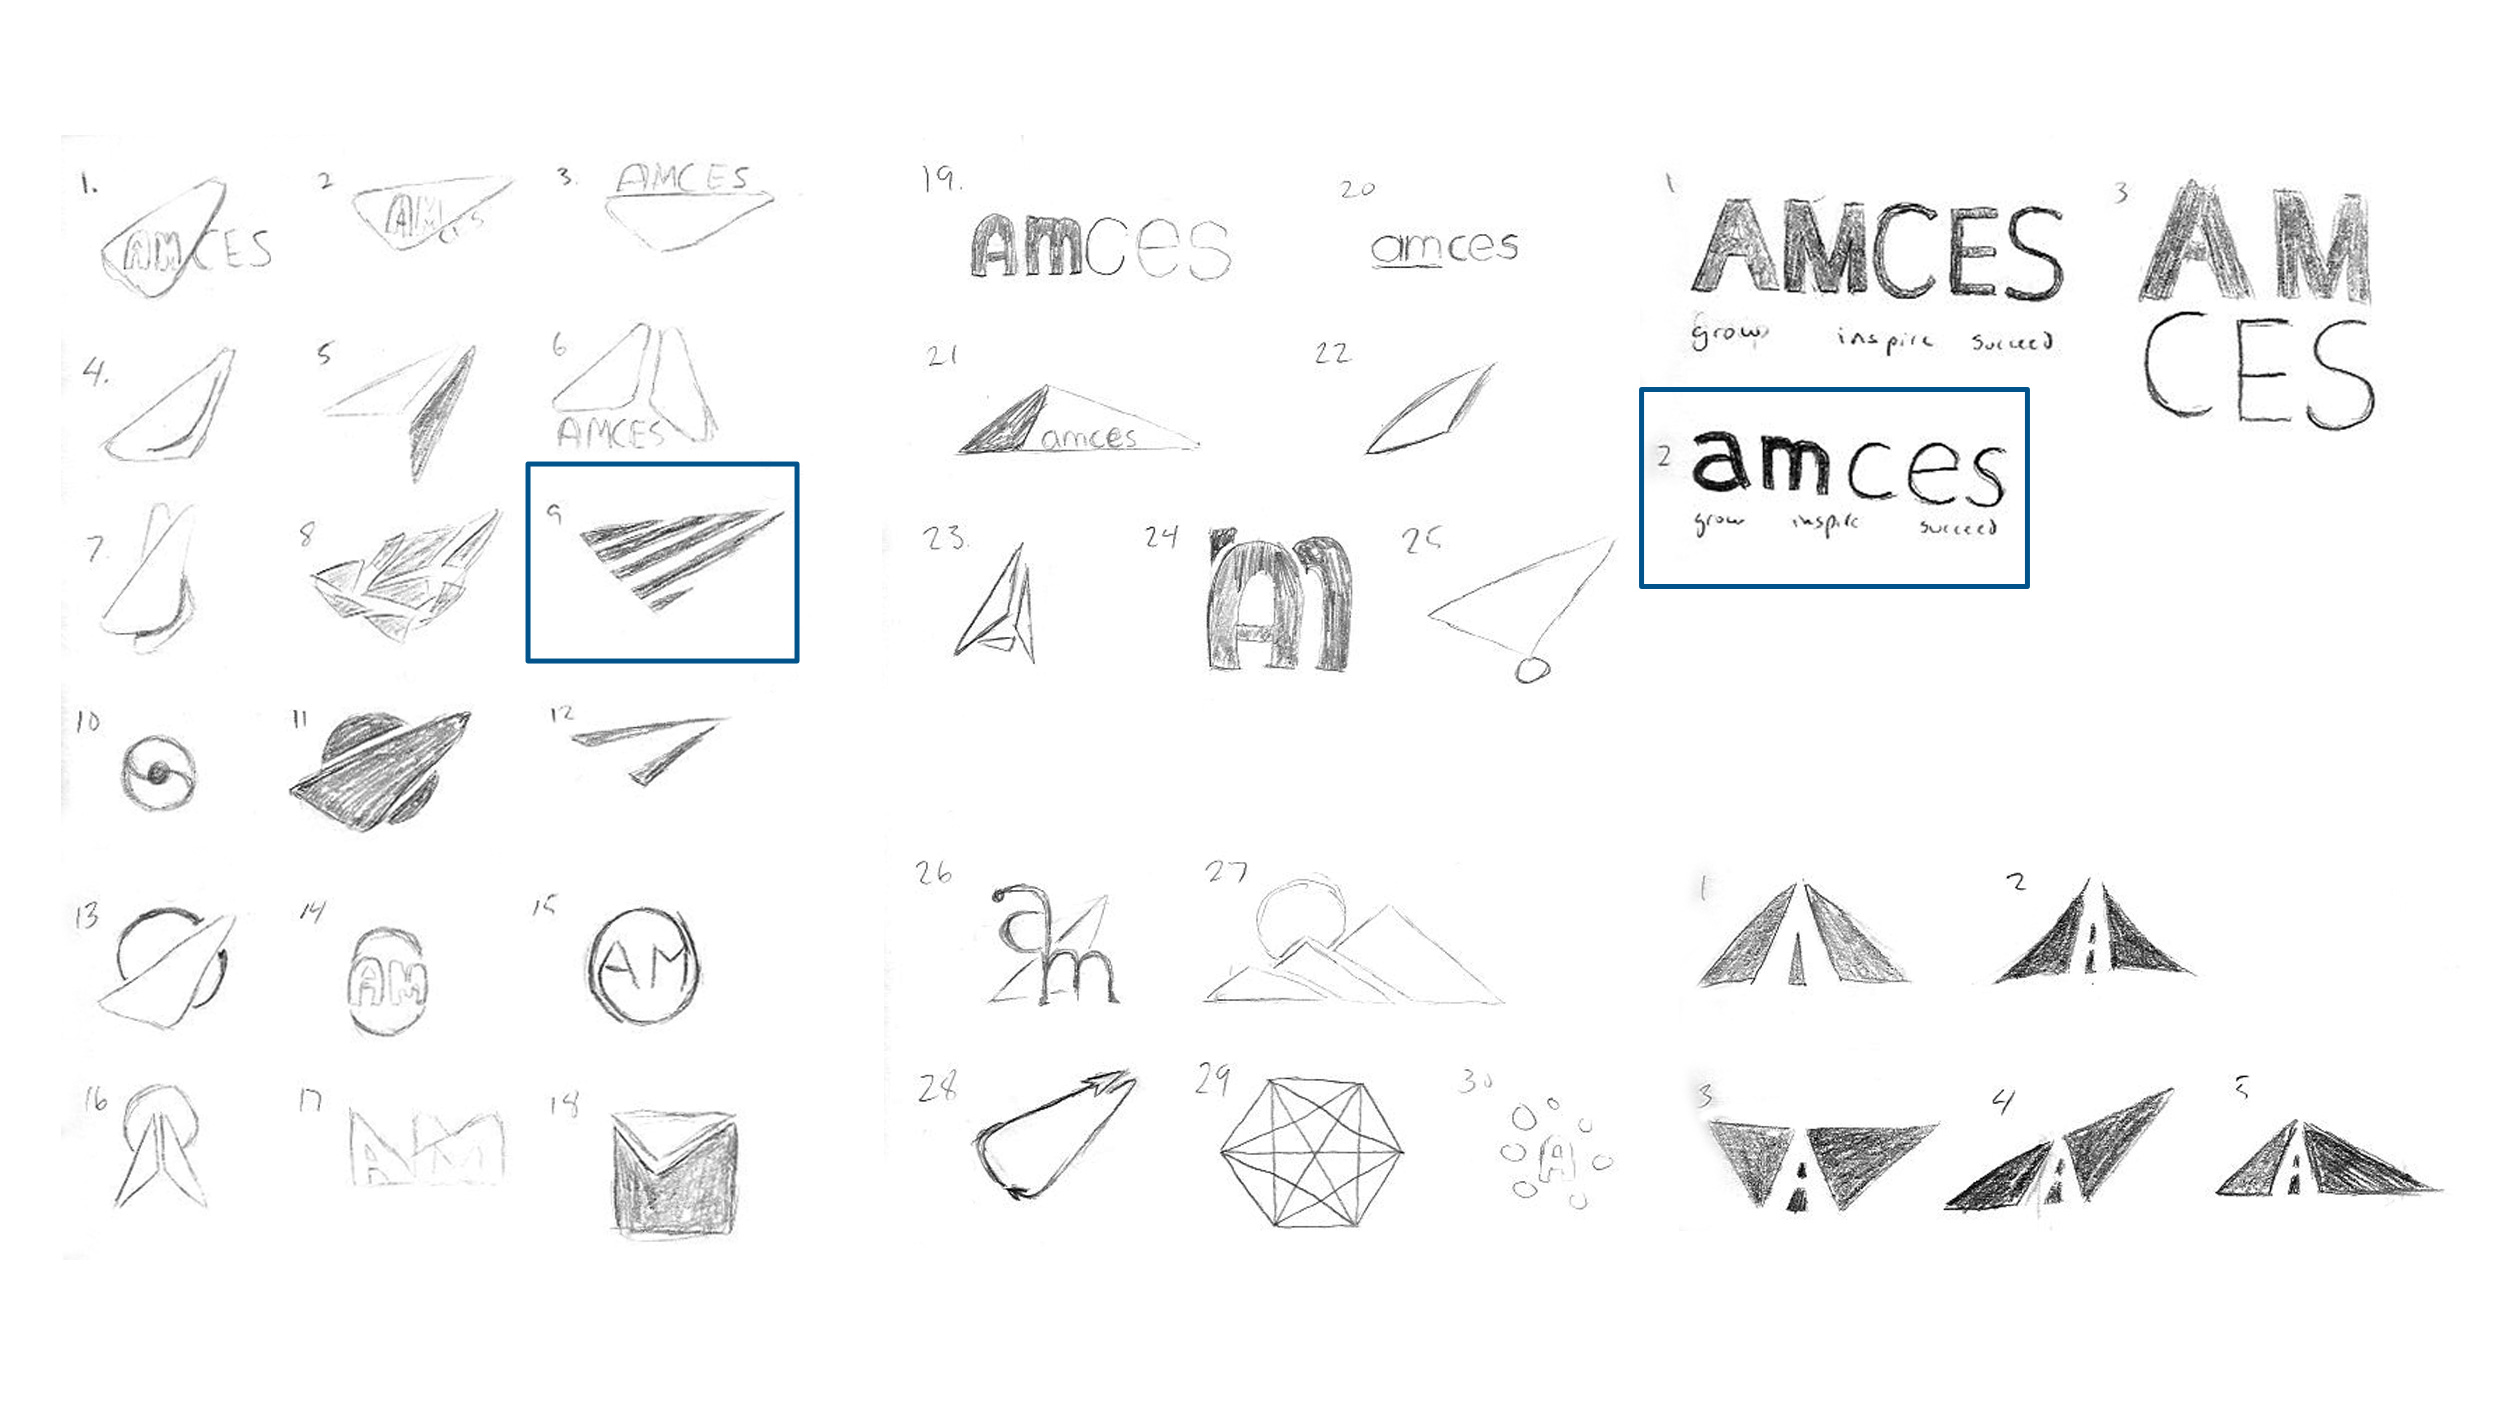 A collection of concepts from the initial round of logo sketches.